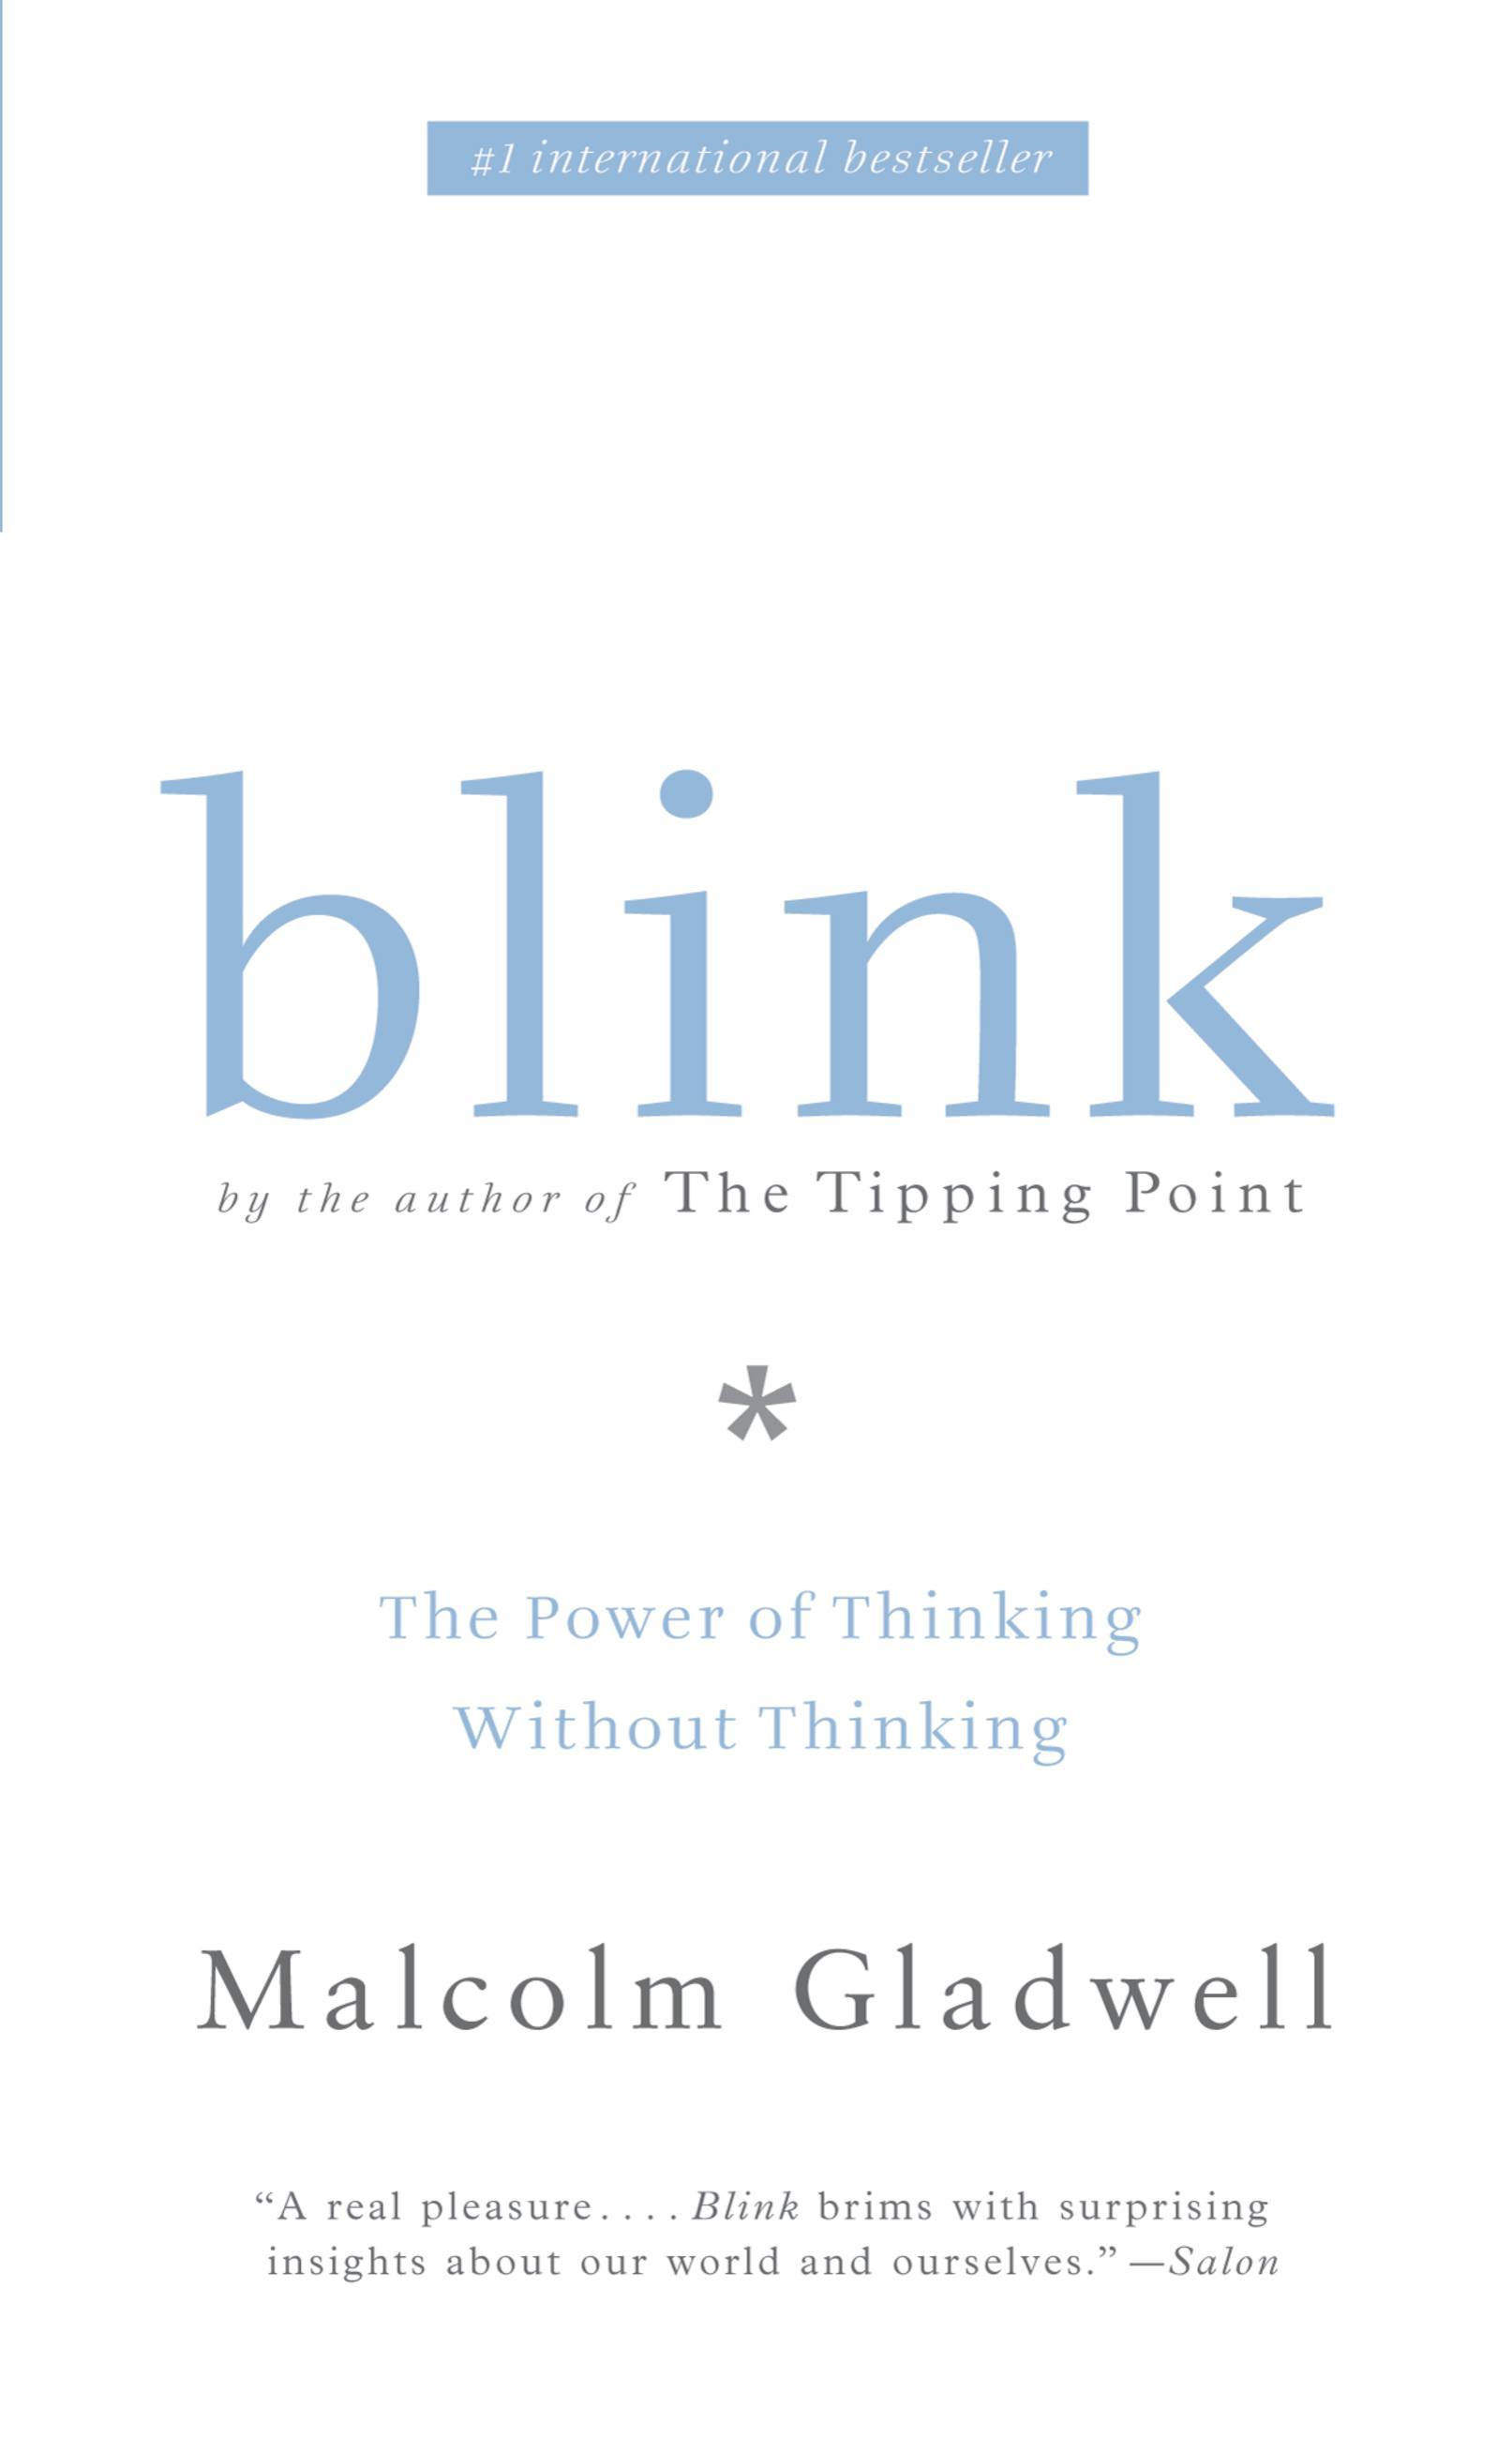 Blink by Malcolm Gladwell, ISBN: 9780316005012